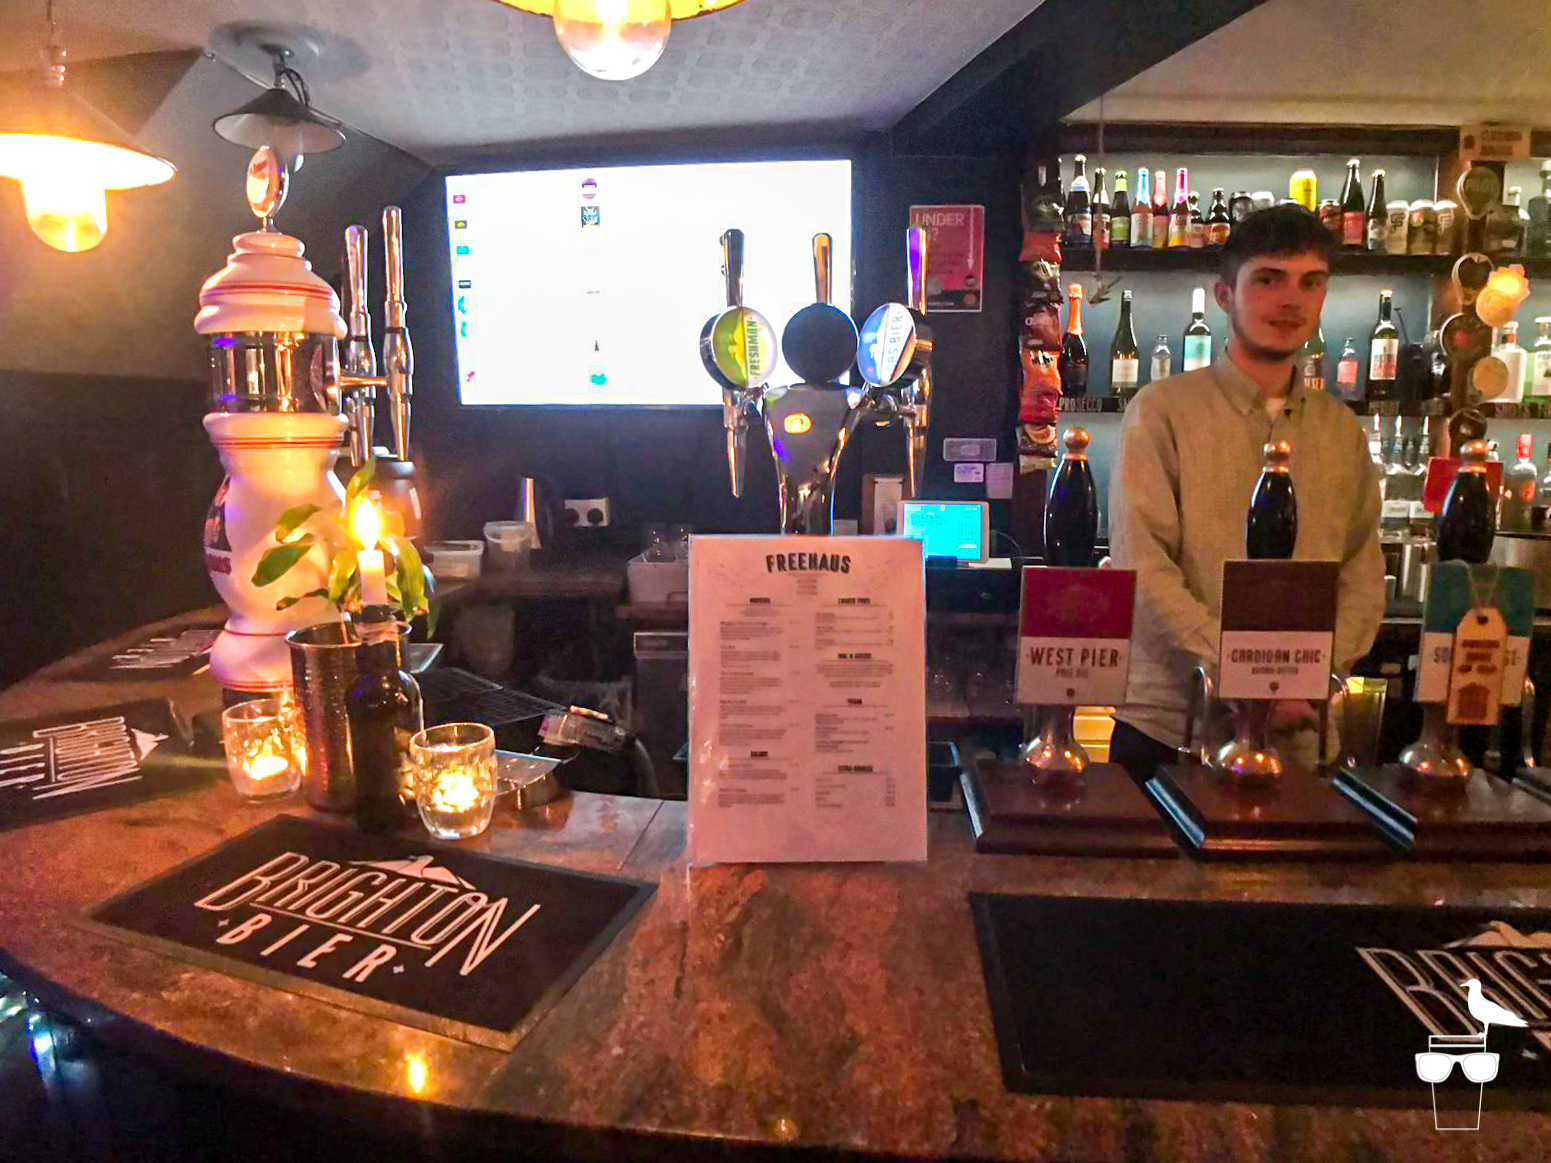 freehaus pub brighton internal barman and bar